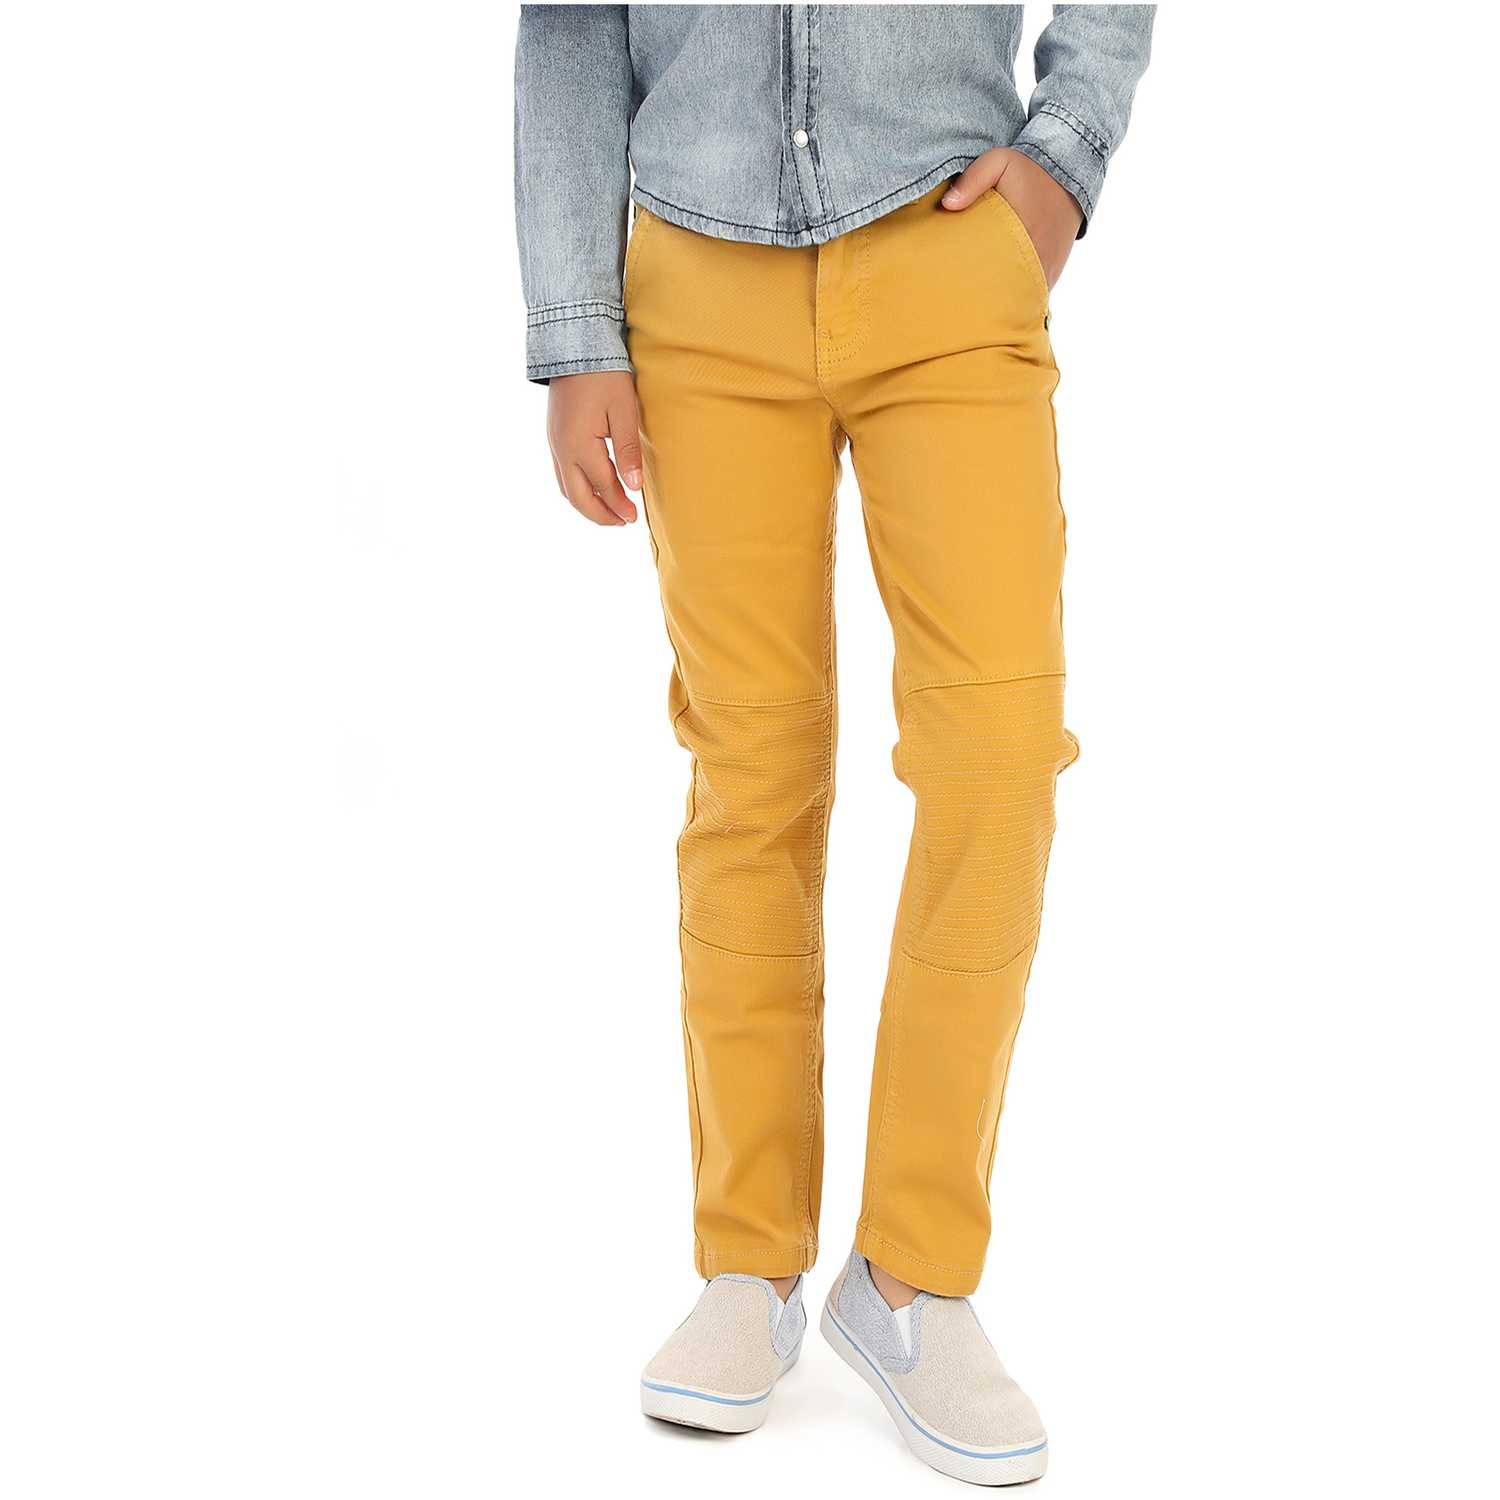 COTTONS JEANS rony Mosta Pantalones